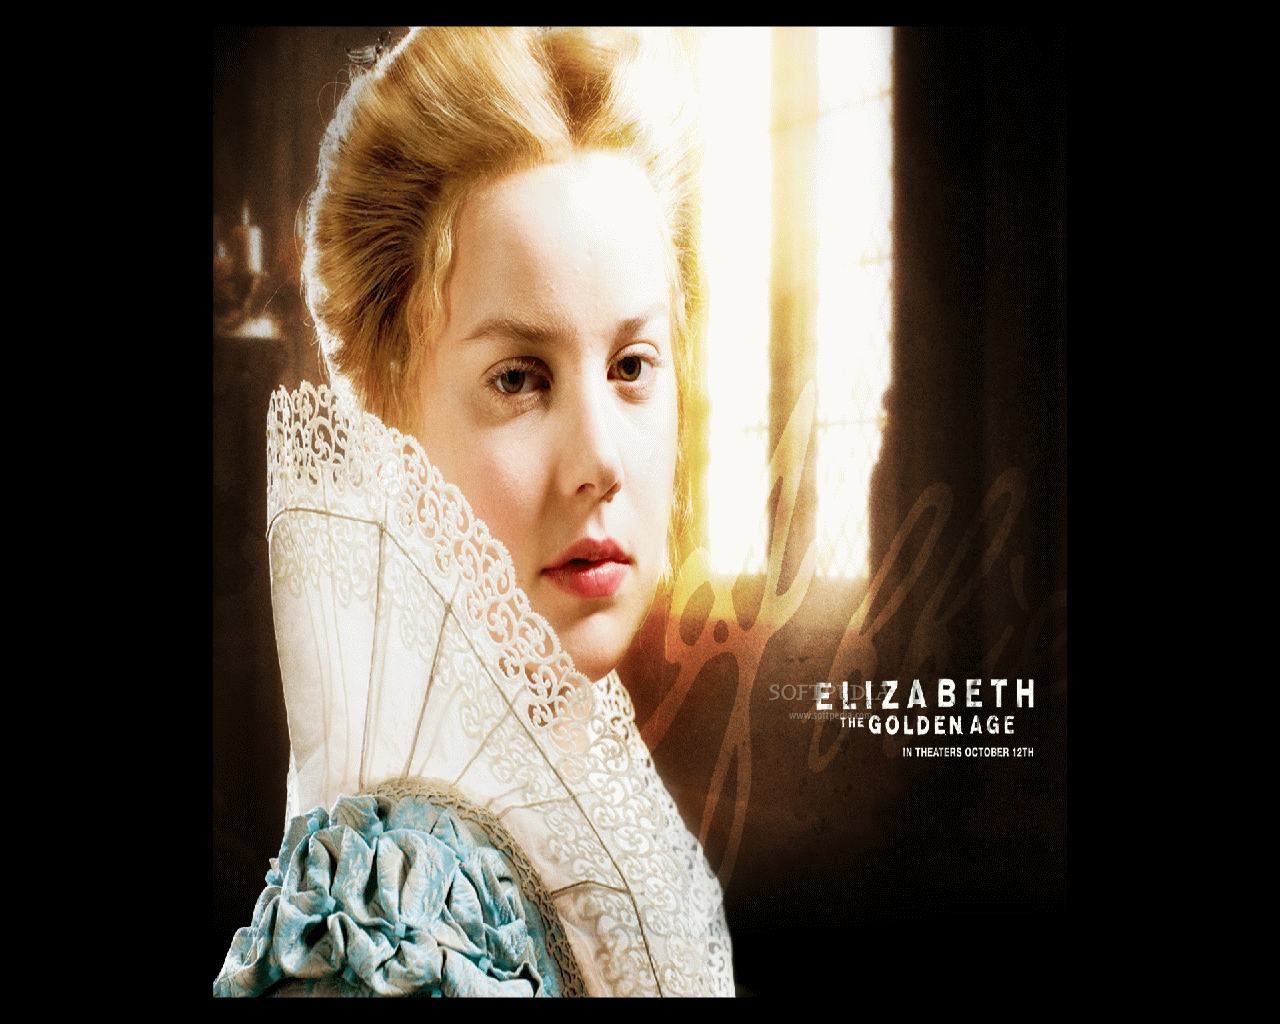 elizabethan era the golden age essay The new elizabethan age: the arts, architecture, fashion and technology the image that defines the second elizabethan era.